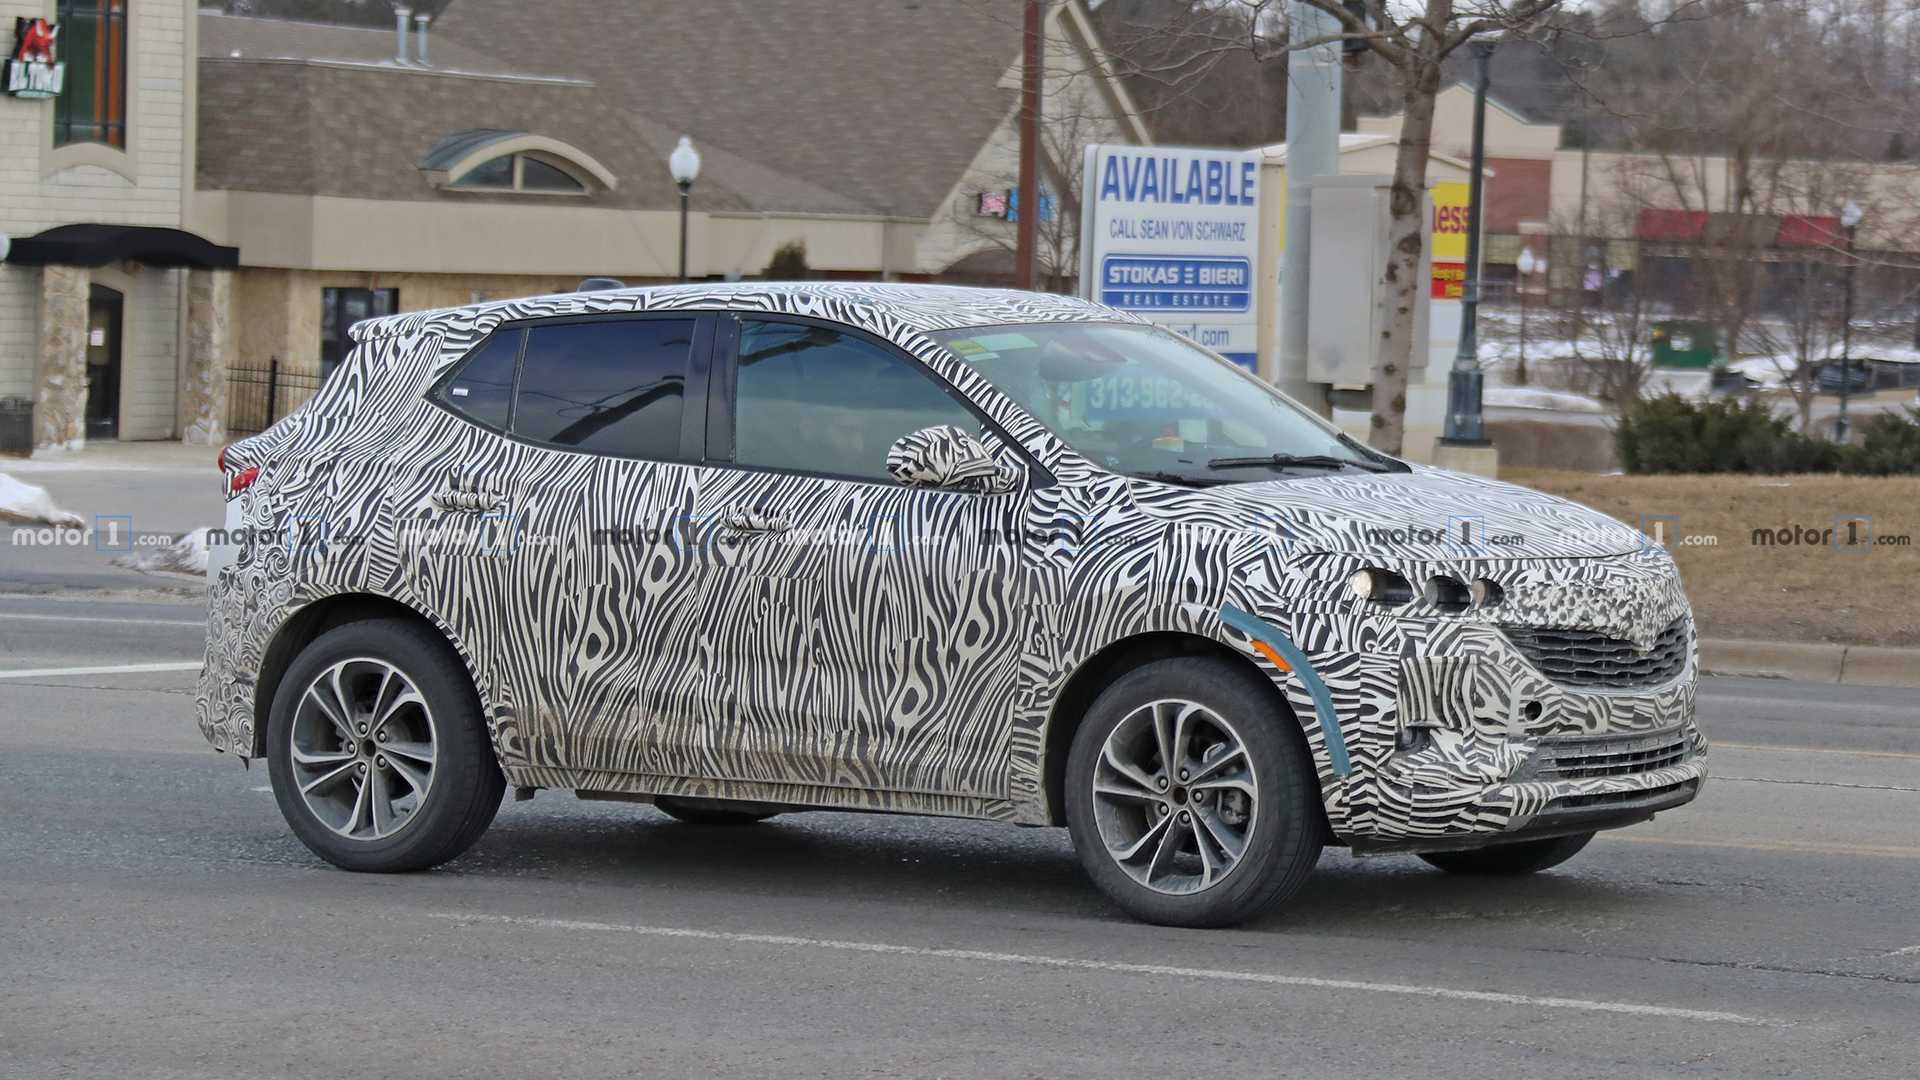 91 All New Buick Encore 2020 Engine Review And Release Date